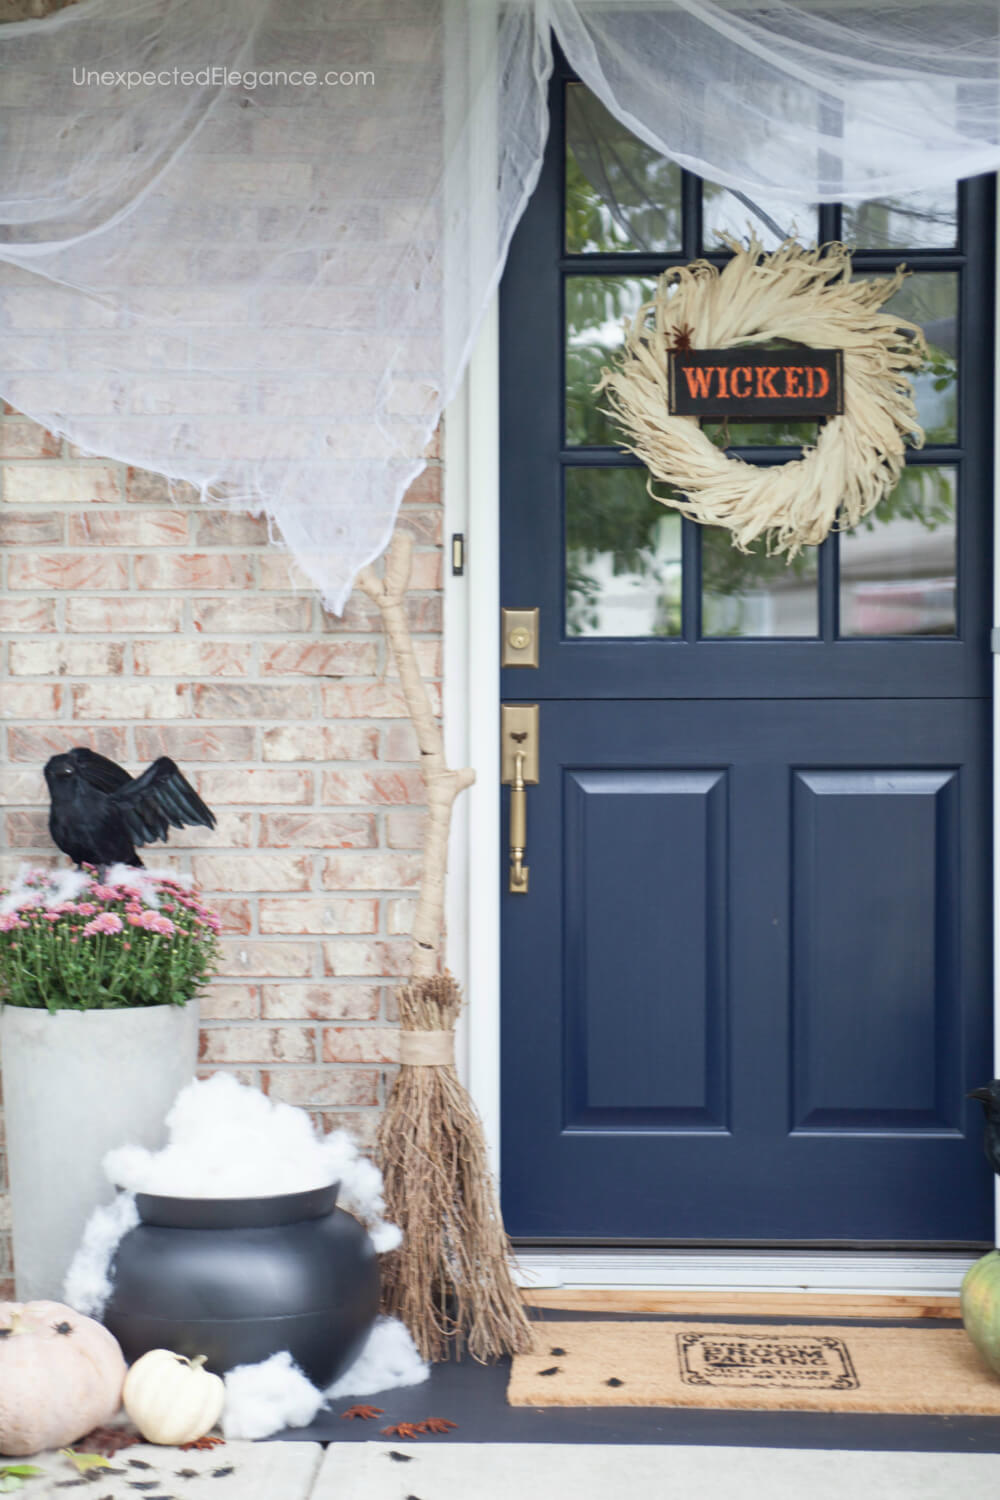 Wicked themed porch that's easy and fun!